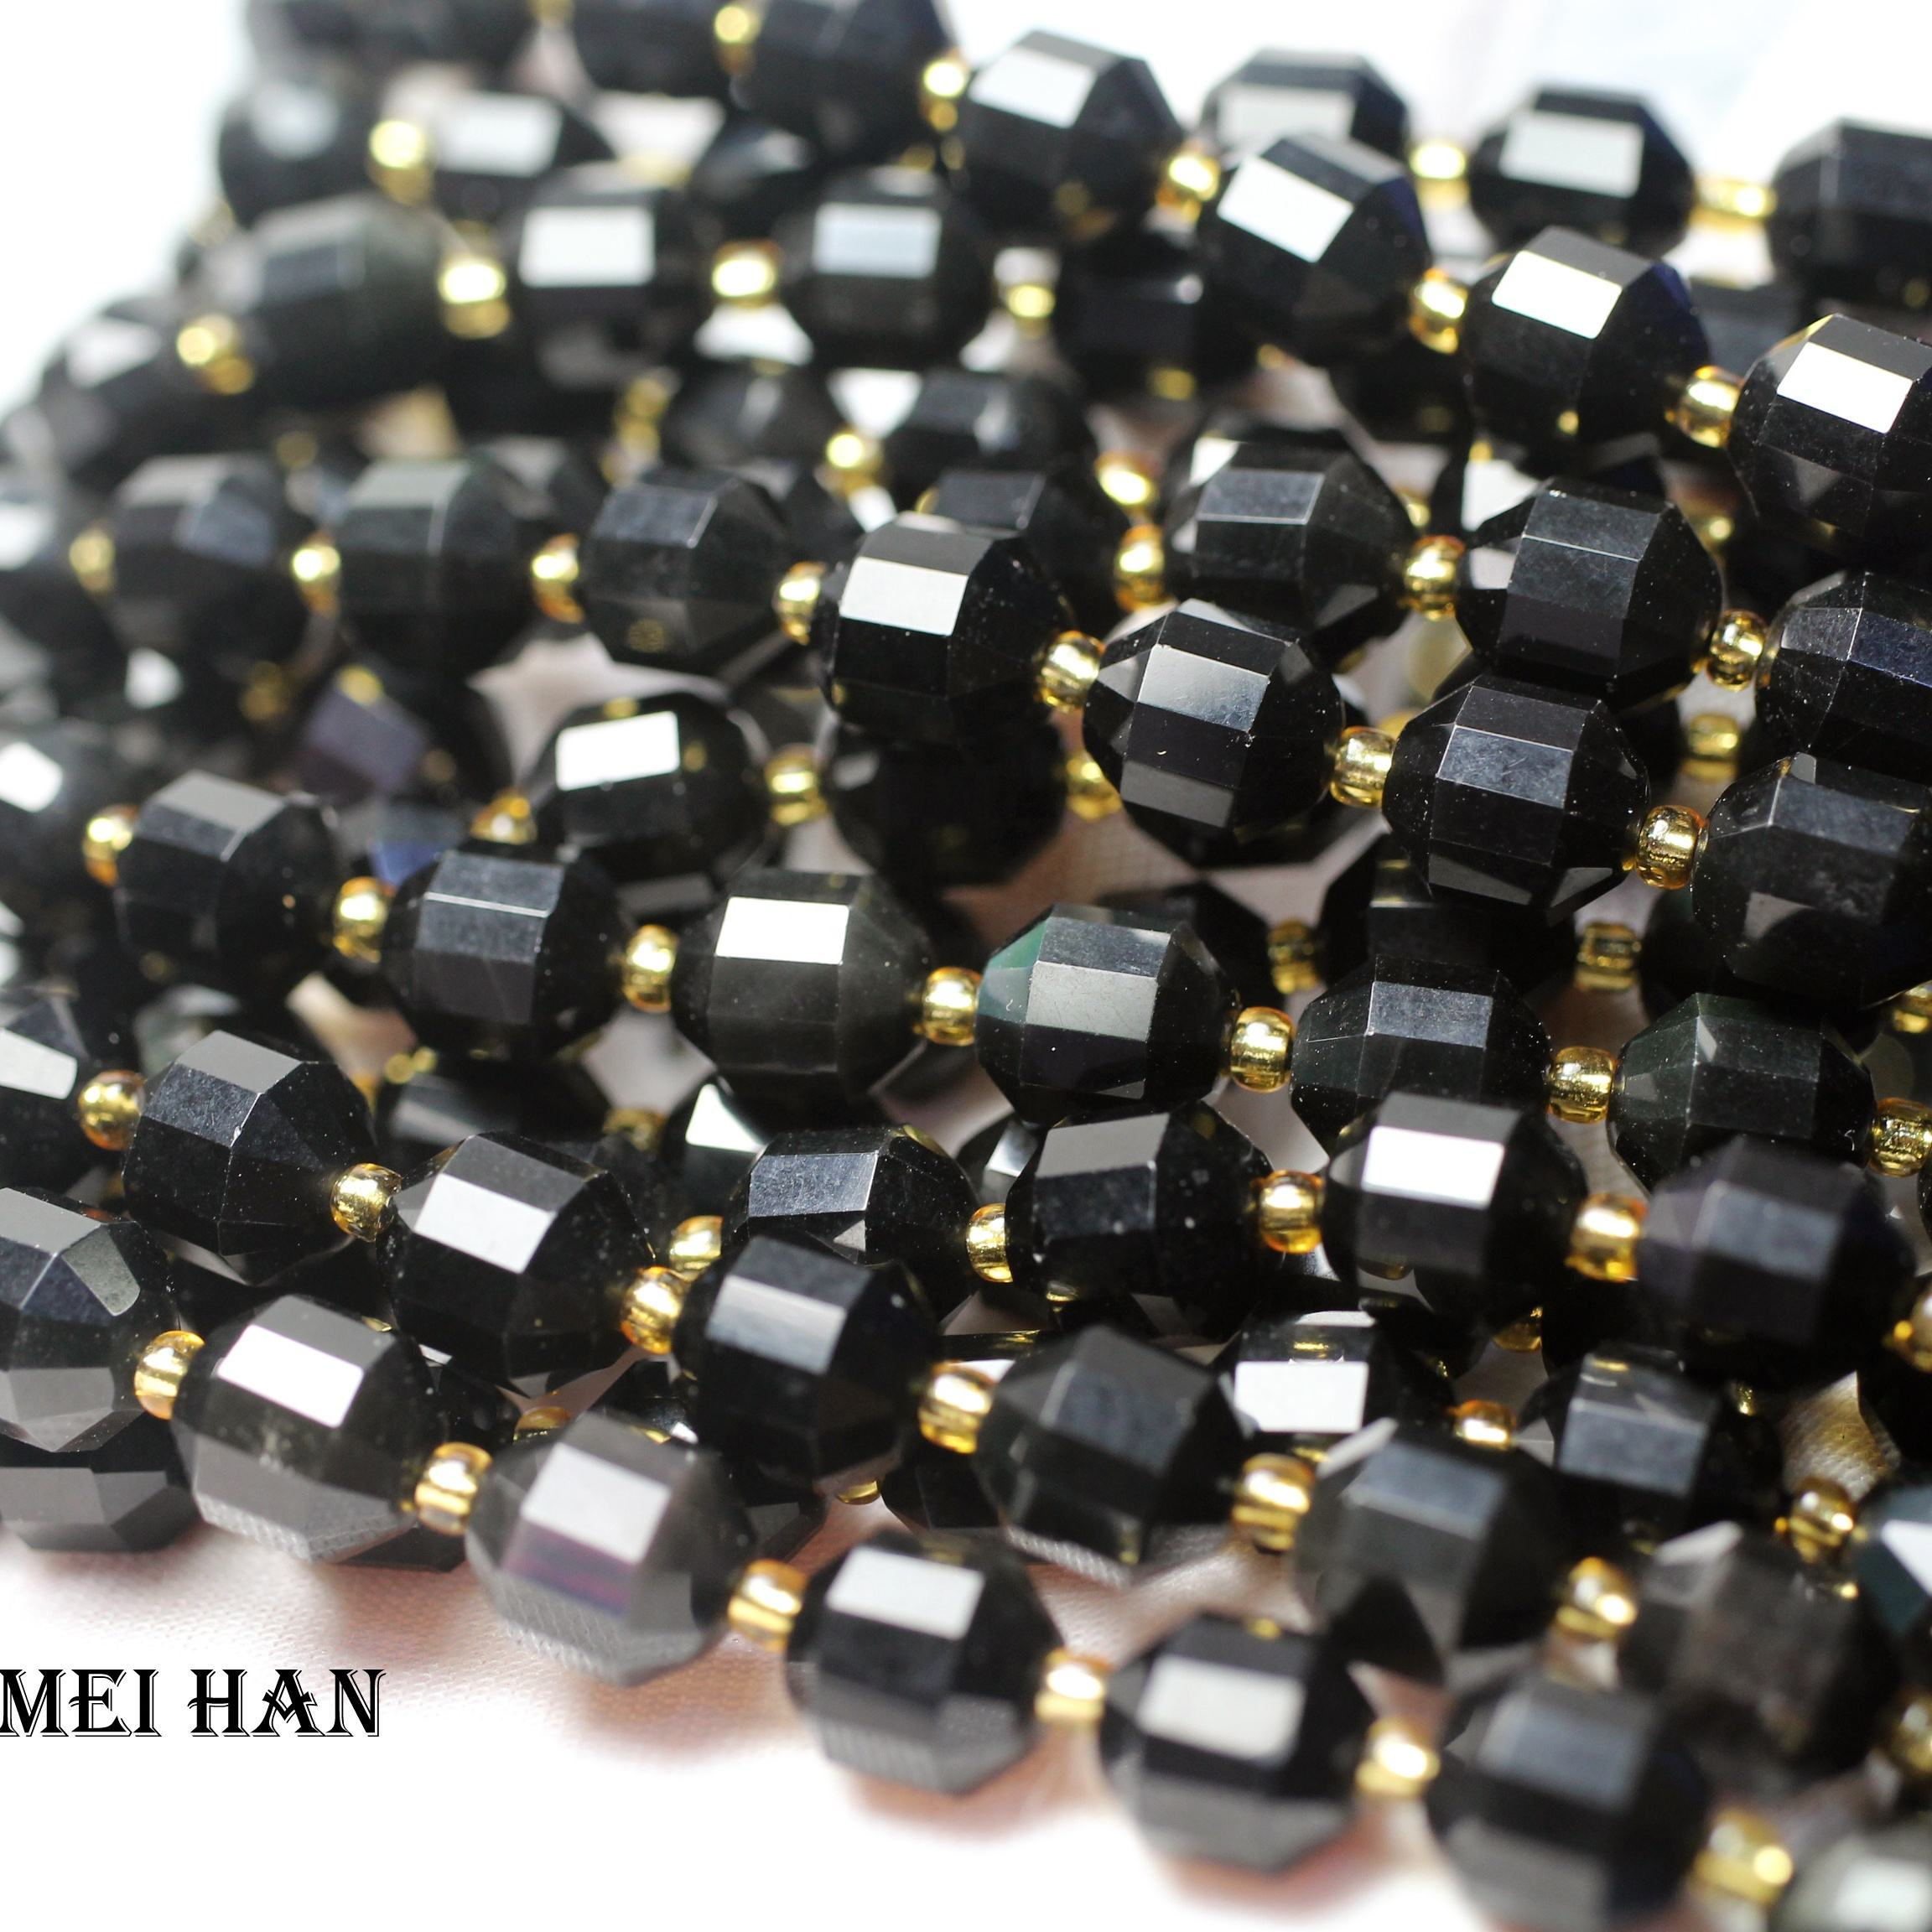 Natural balck obsidian 9*10mm energy column faceted sharp loose beads stone for jewelry making design DIY